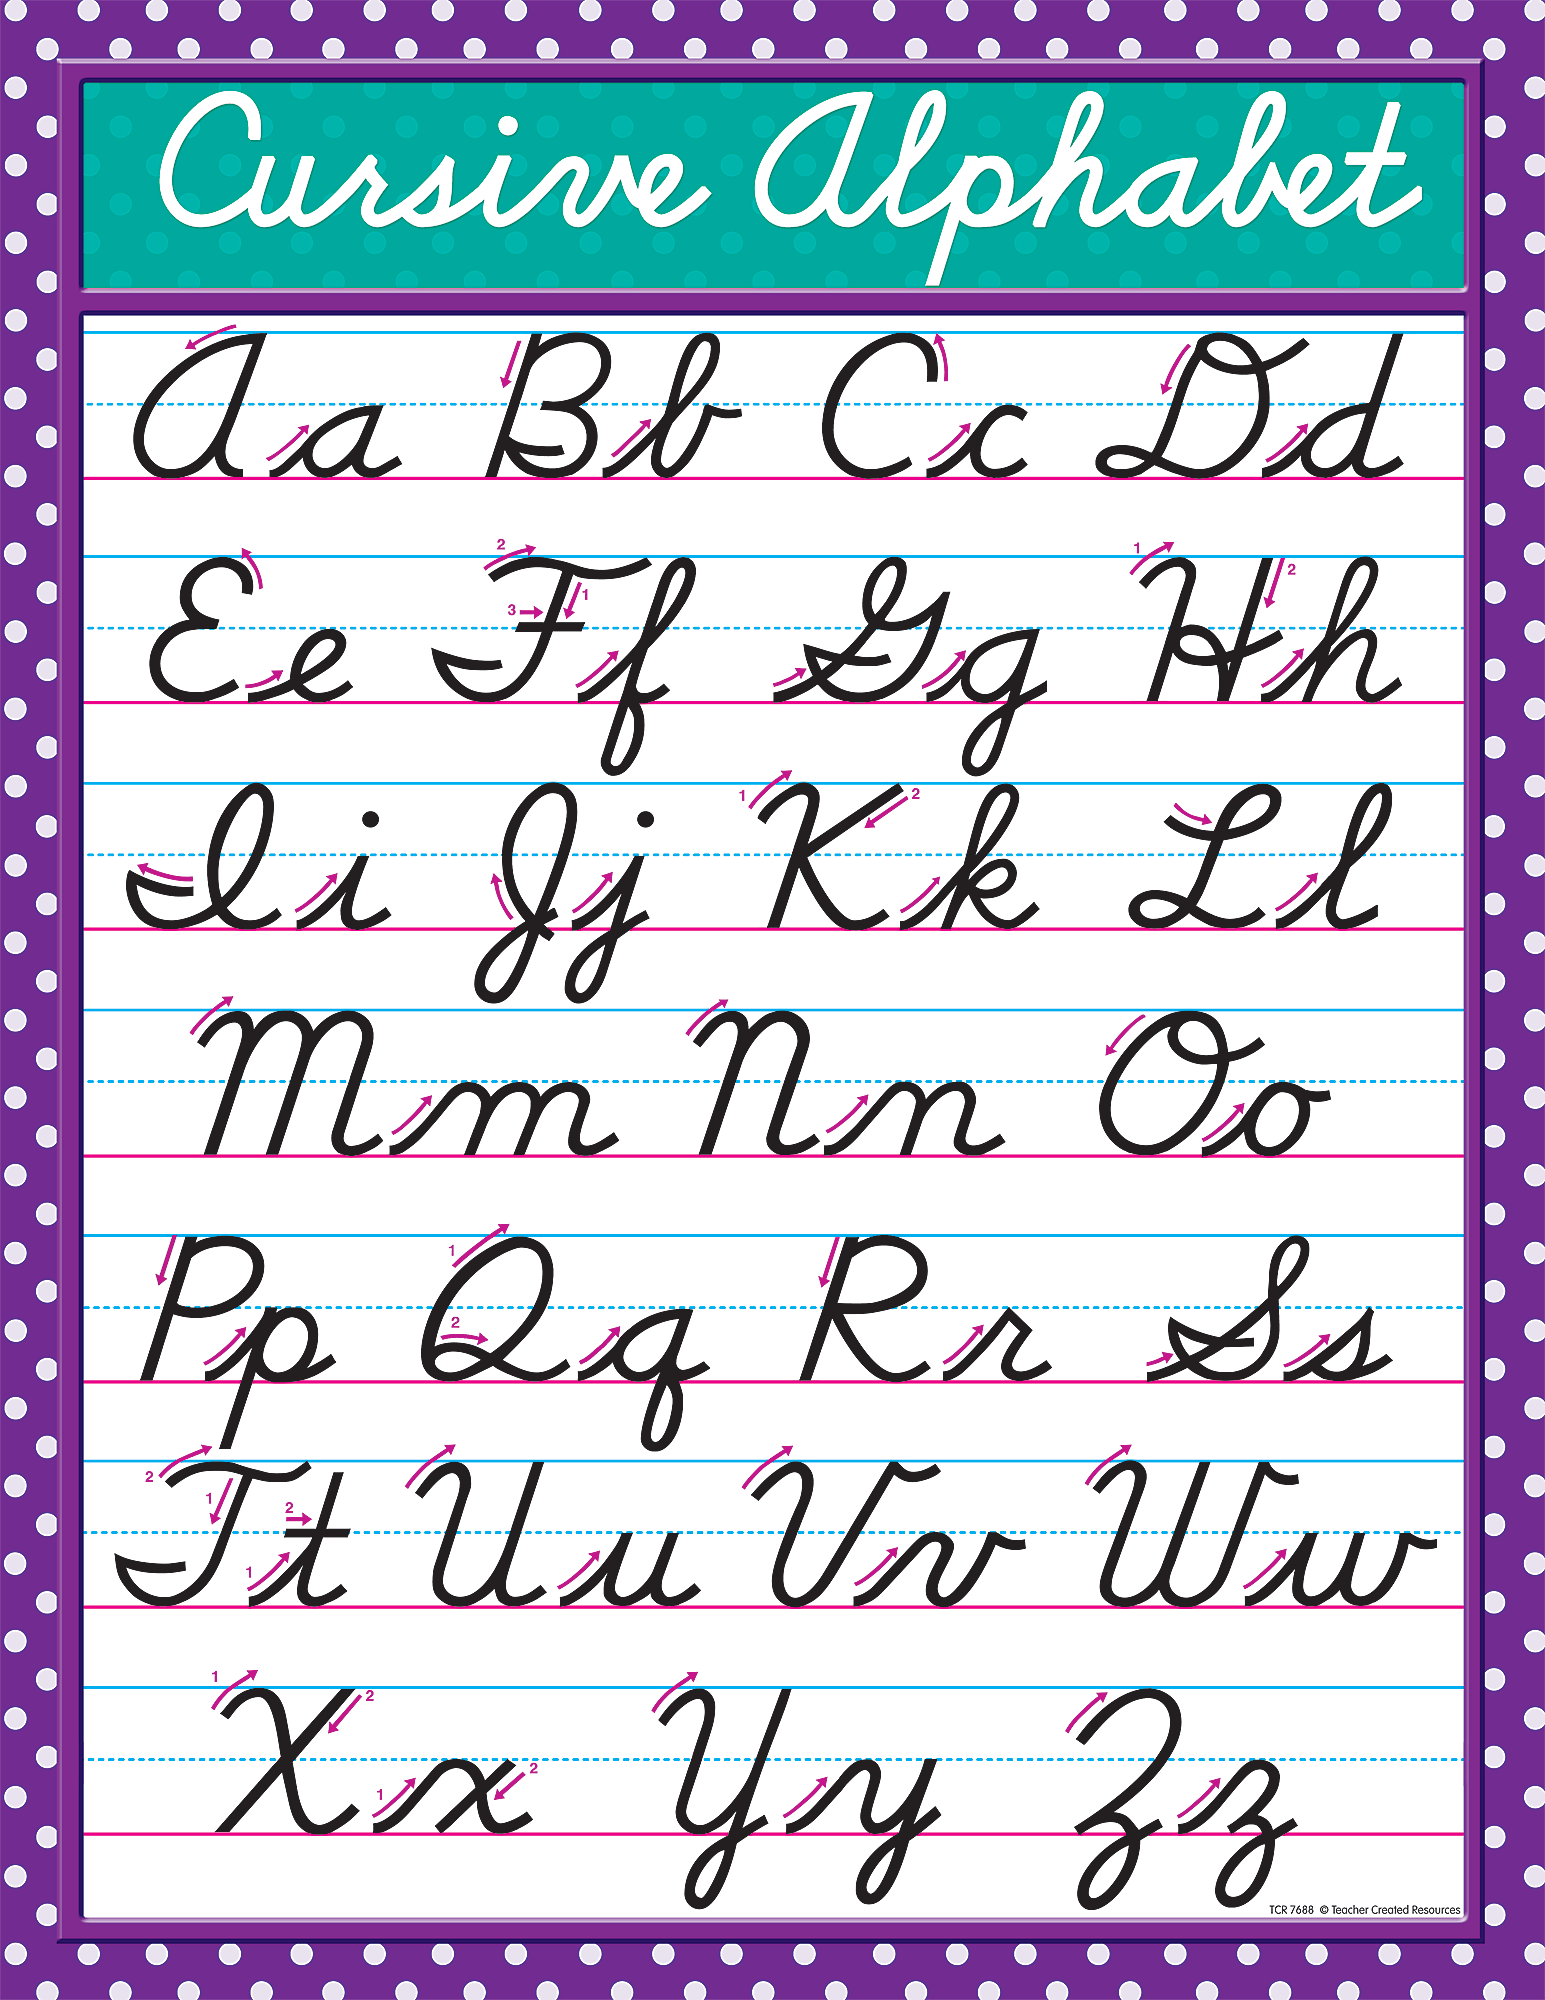 Monster image for cursive chart printable